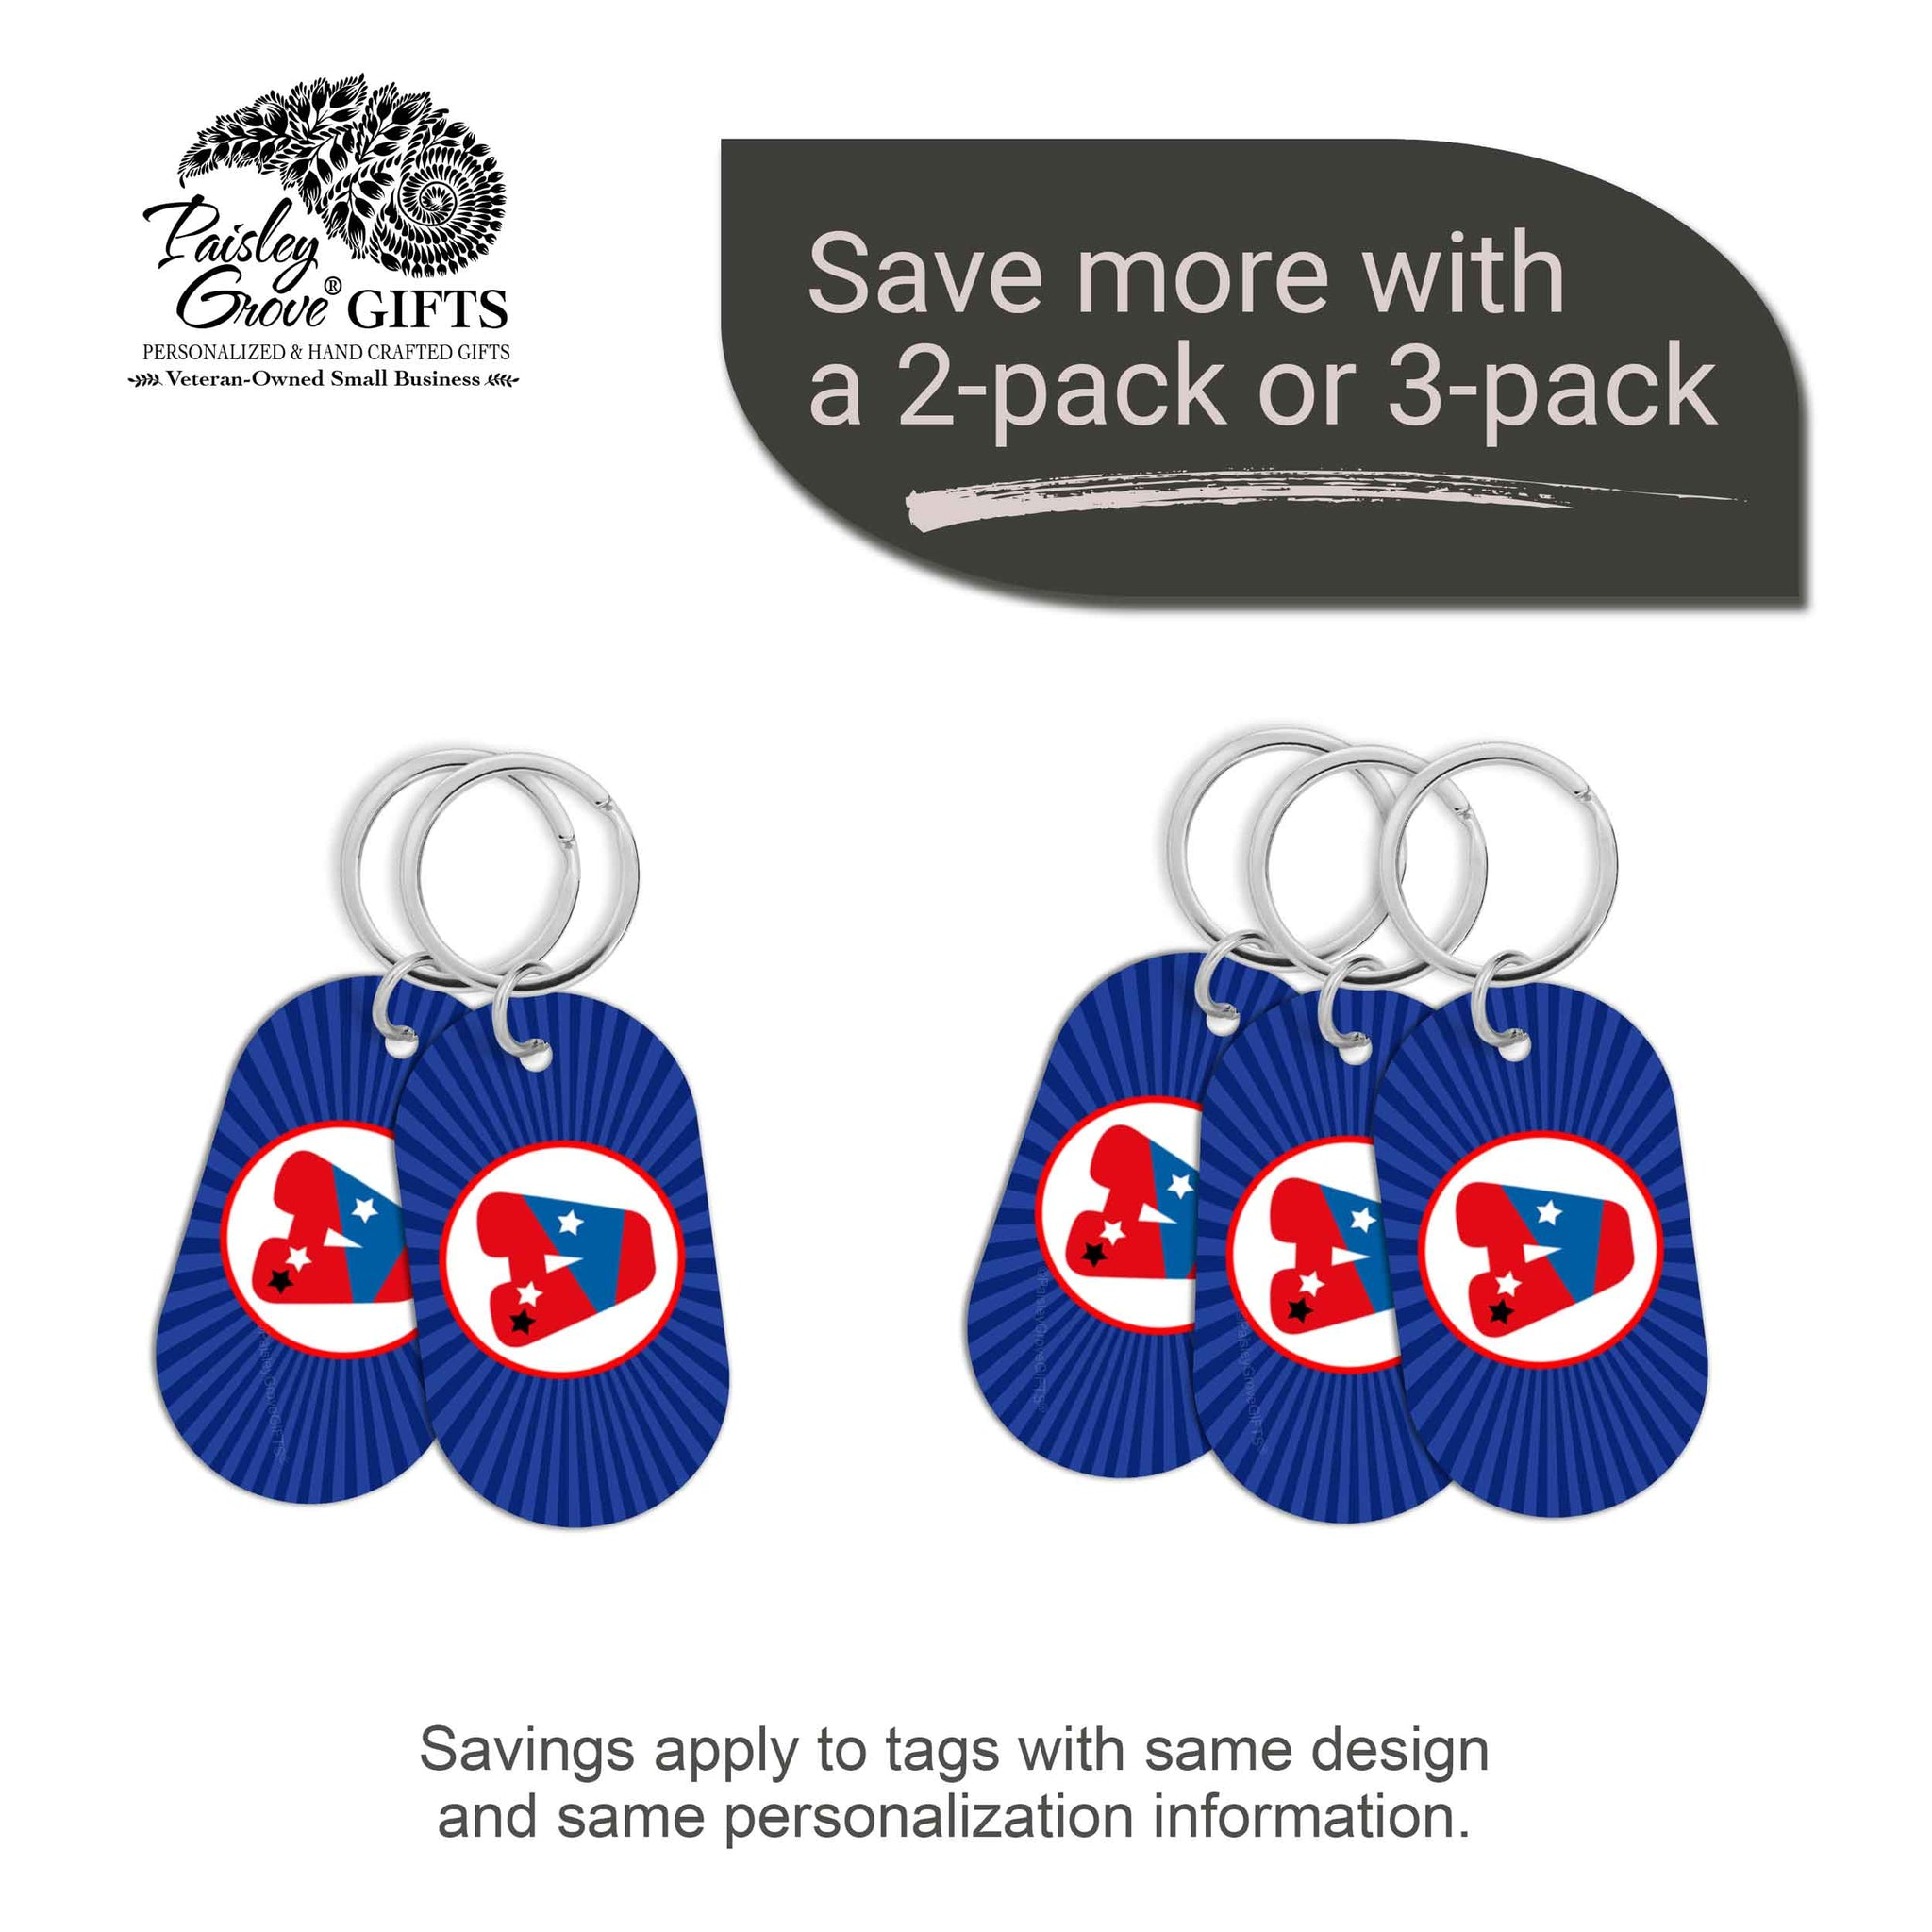 CopyrightPaisleyGroveGIFTS S070a5 Personalized bag ID tags for luggage or bags 2 or 3 pack option savings